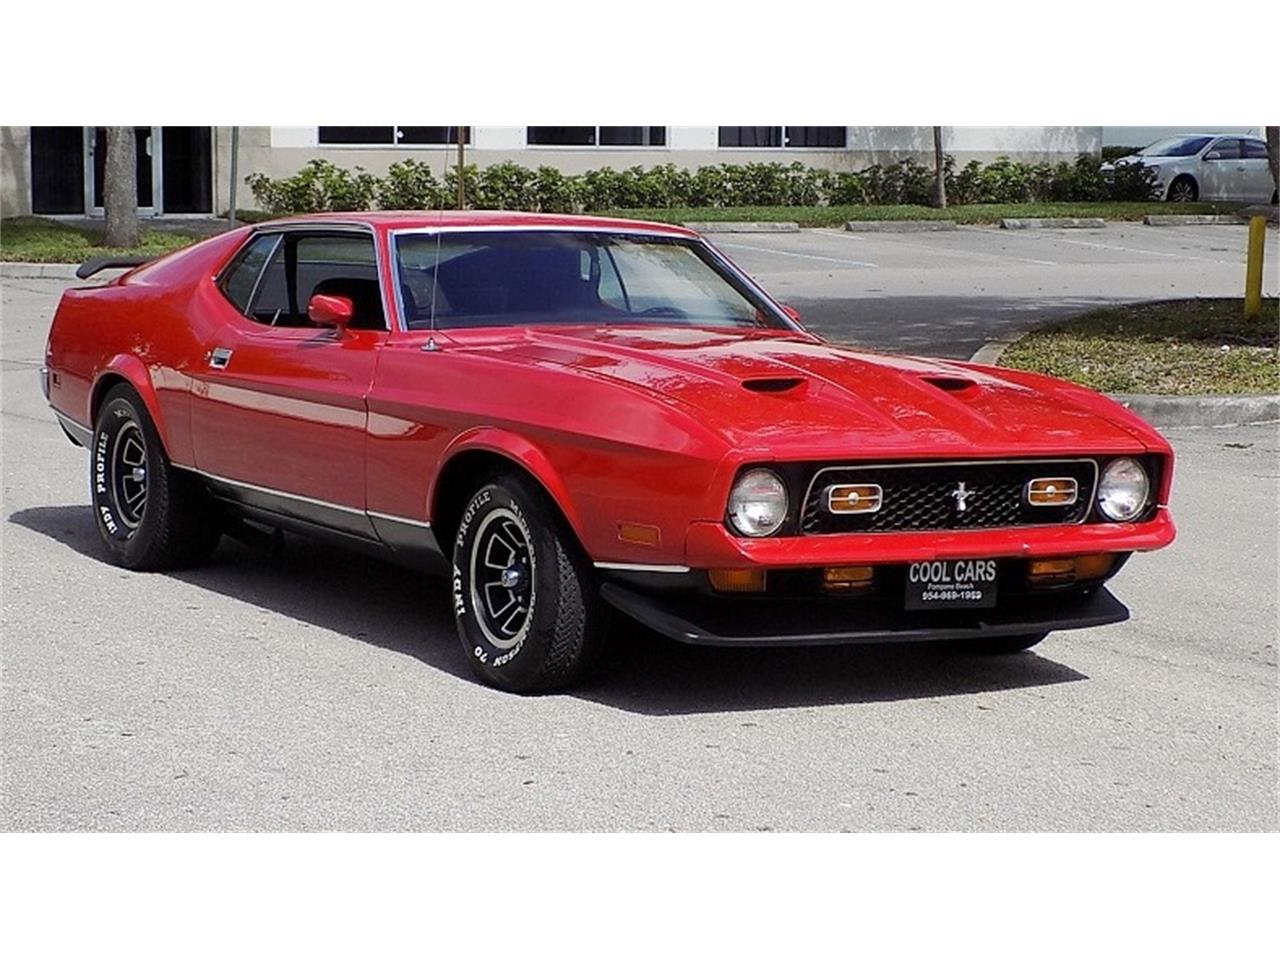 Large picture of 72 mustang mach 1 pf2u